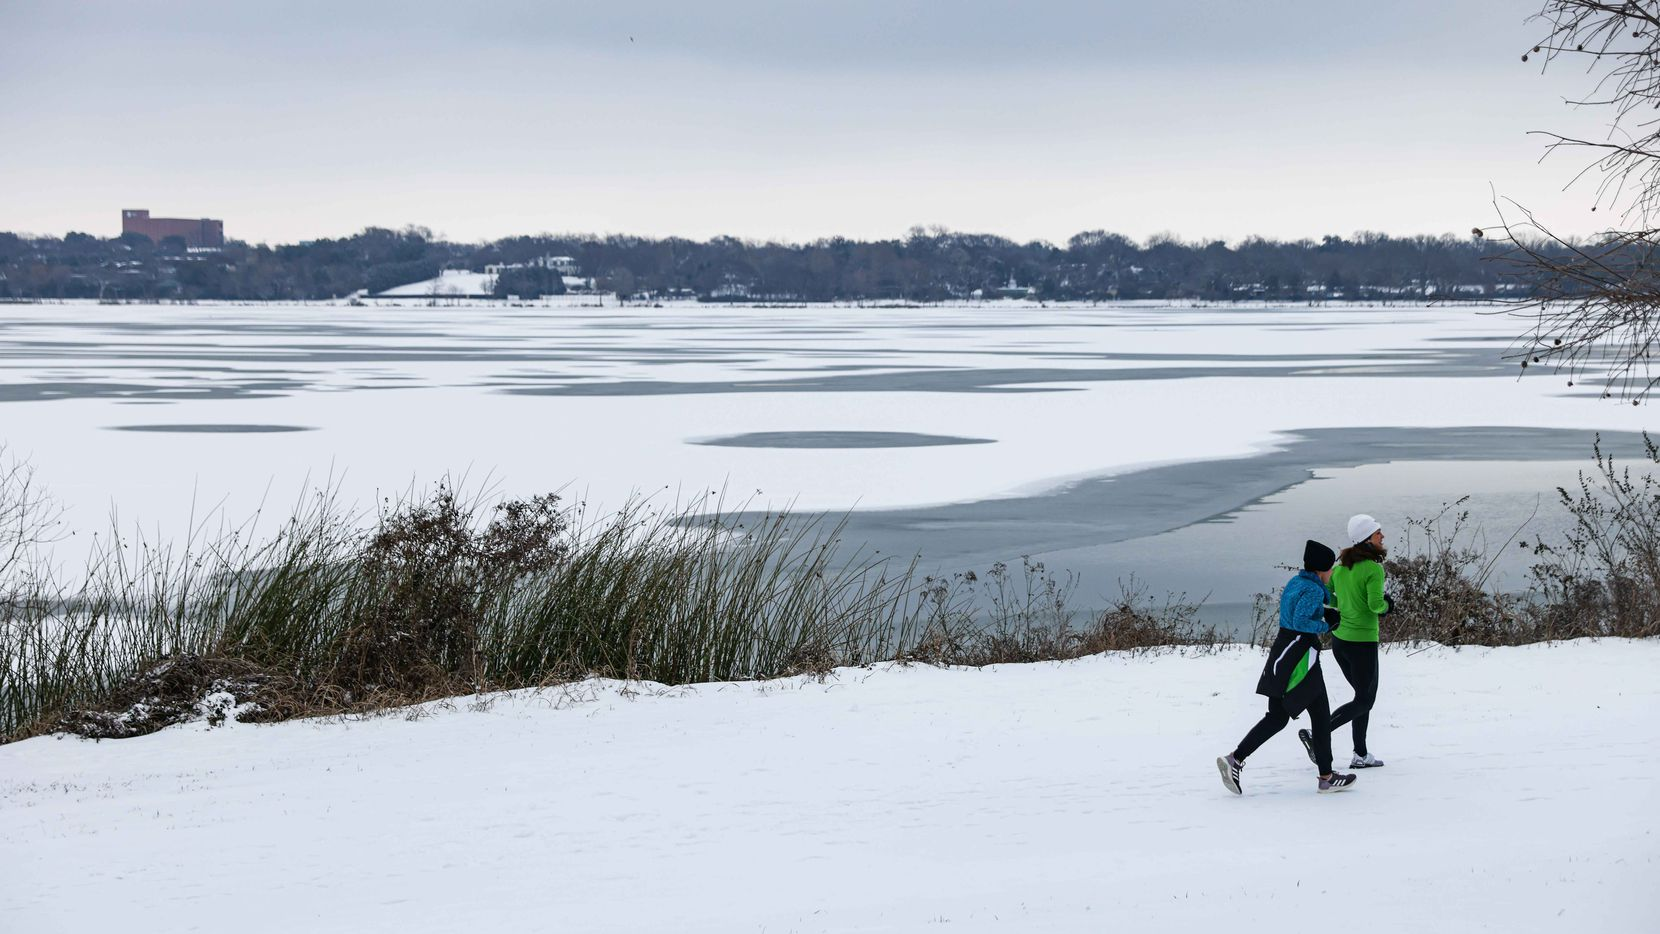 A couple of women jogged Feb. 17 on the snow that fell during an overnight storm at White Rock Lake in Dallas.